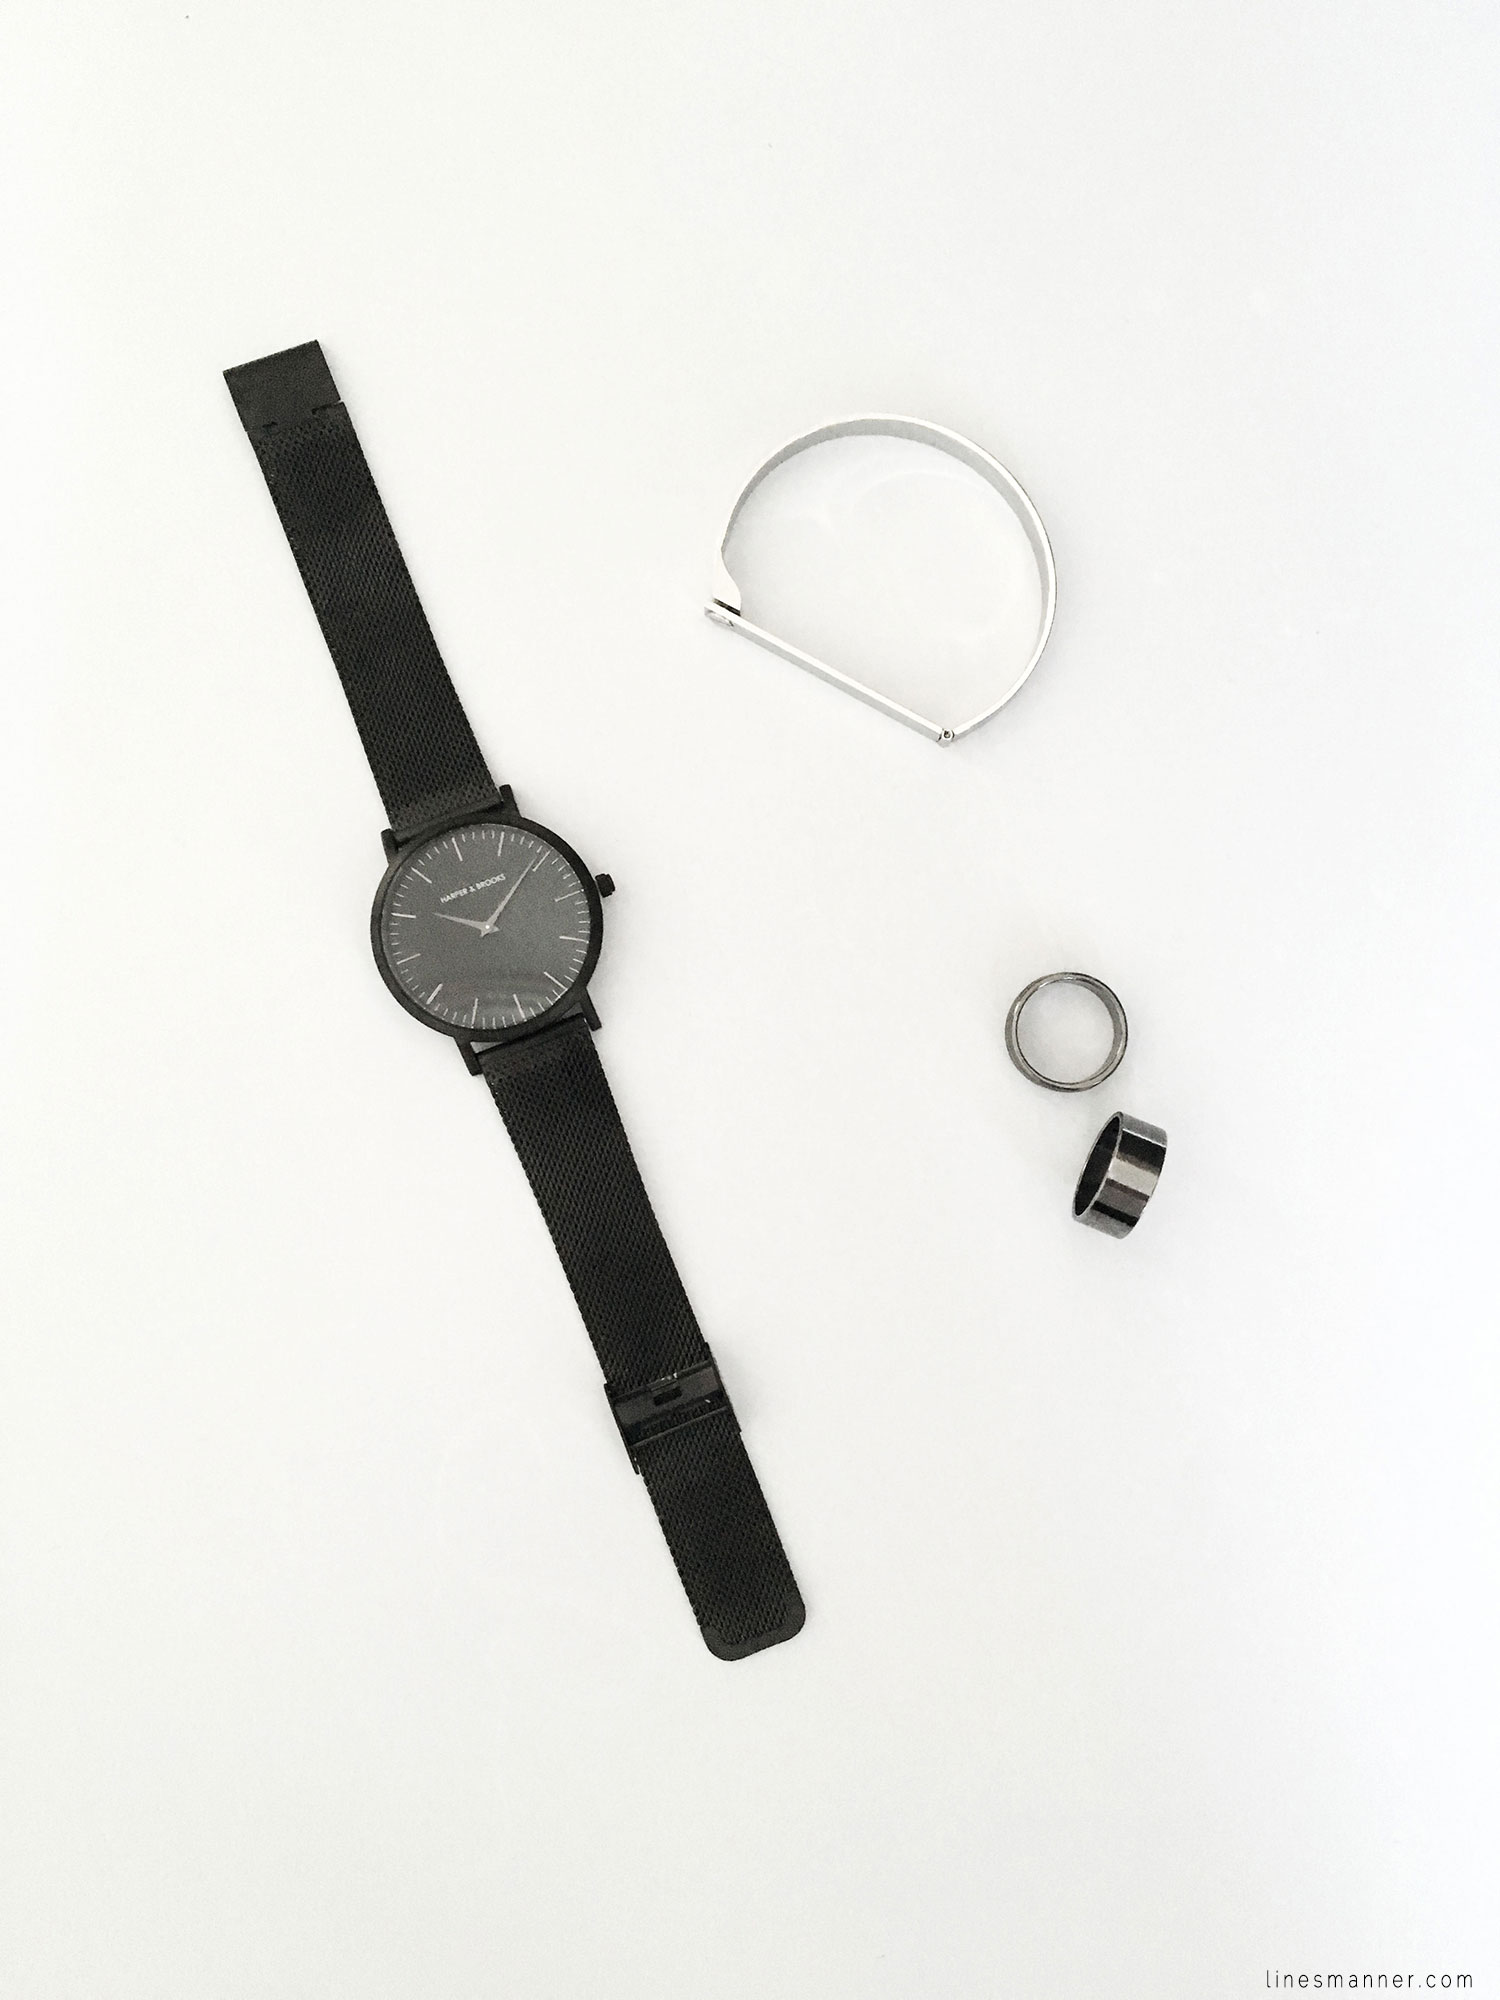 Lines-Manner-Flatlay-Monochrome-Essentials-Details-Jewellery-Hardware-Morning_routine-Black_and_white-White-Minimal-Impact-Classics-Timeless-Simplicity-5